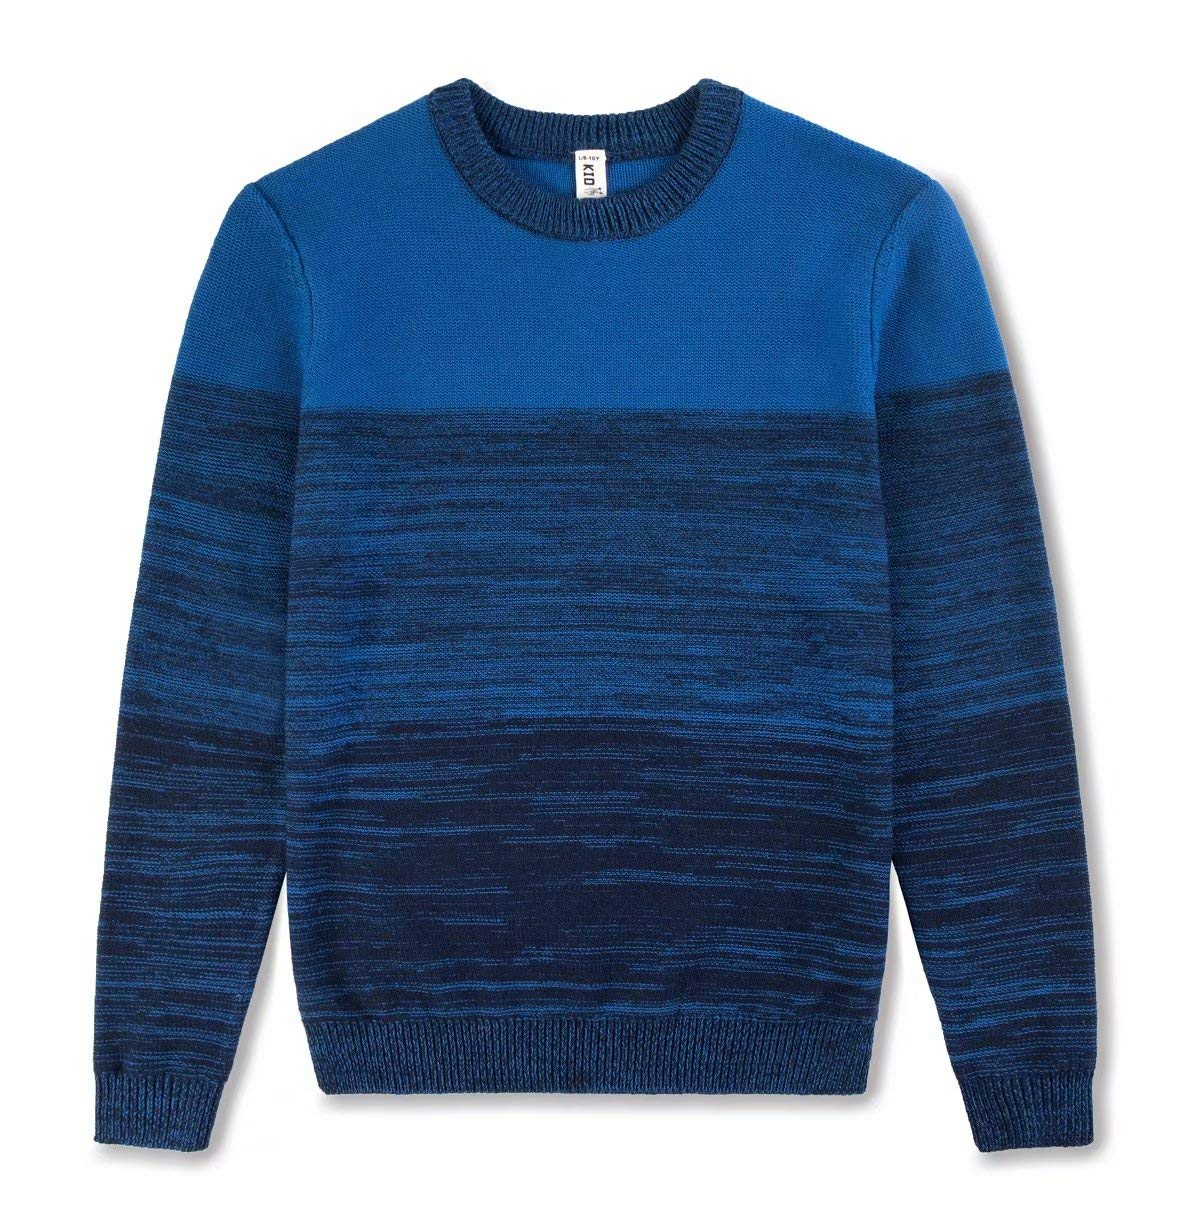 Kid Nation Boys' Sweater Cotton Long Sleeve Casual Pullover Mixed Engineered Colors Stripe Crew Neck Blue XL